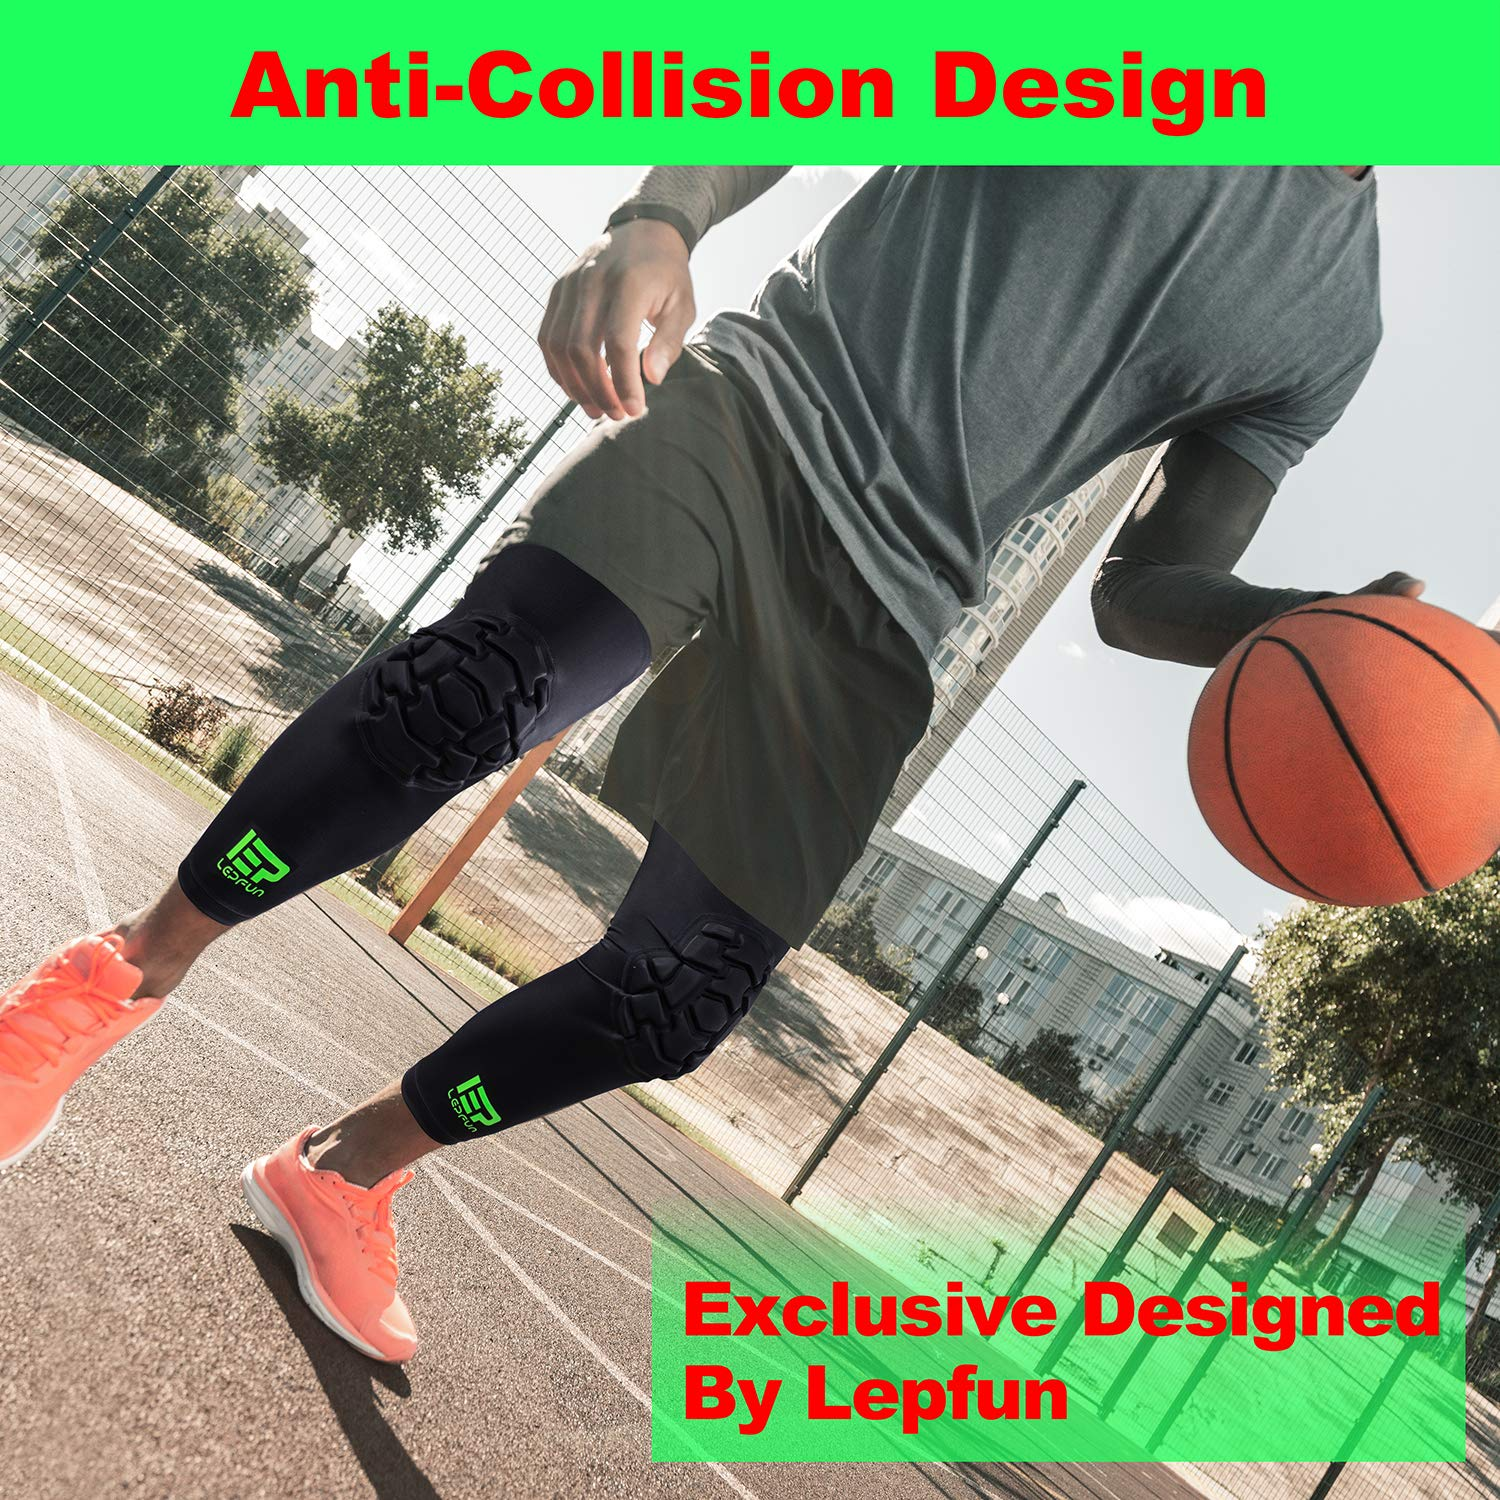 Lepfun A7000 Pro Crashproof Basketball Knee Pads with Antislip Support ,(1 Pair)Kids Adult Leg Sleeve Protector Gear